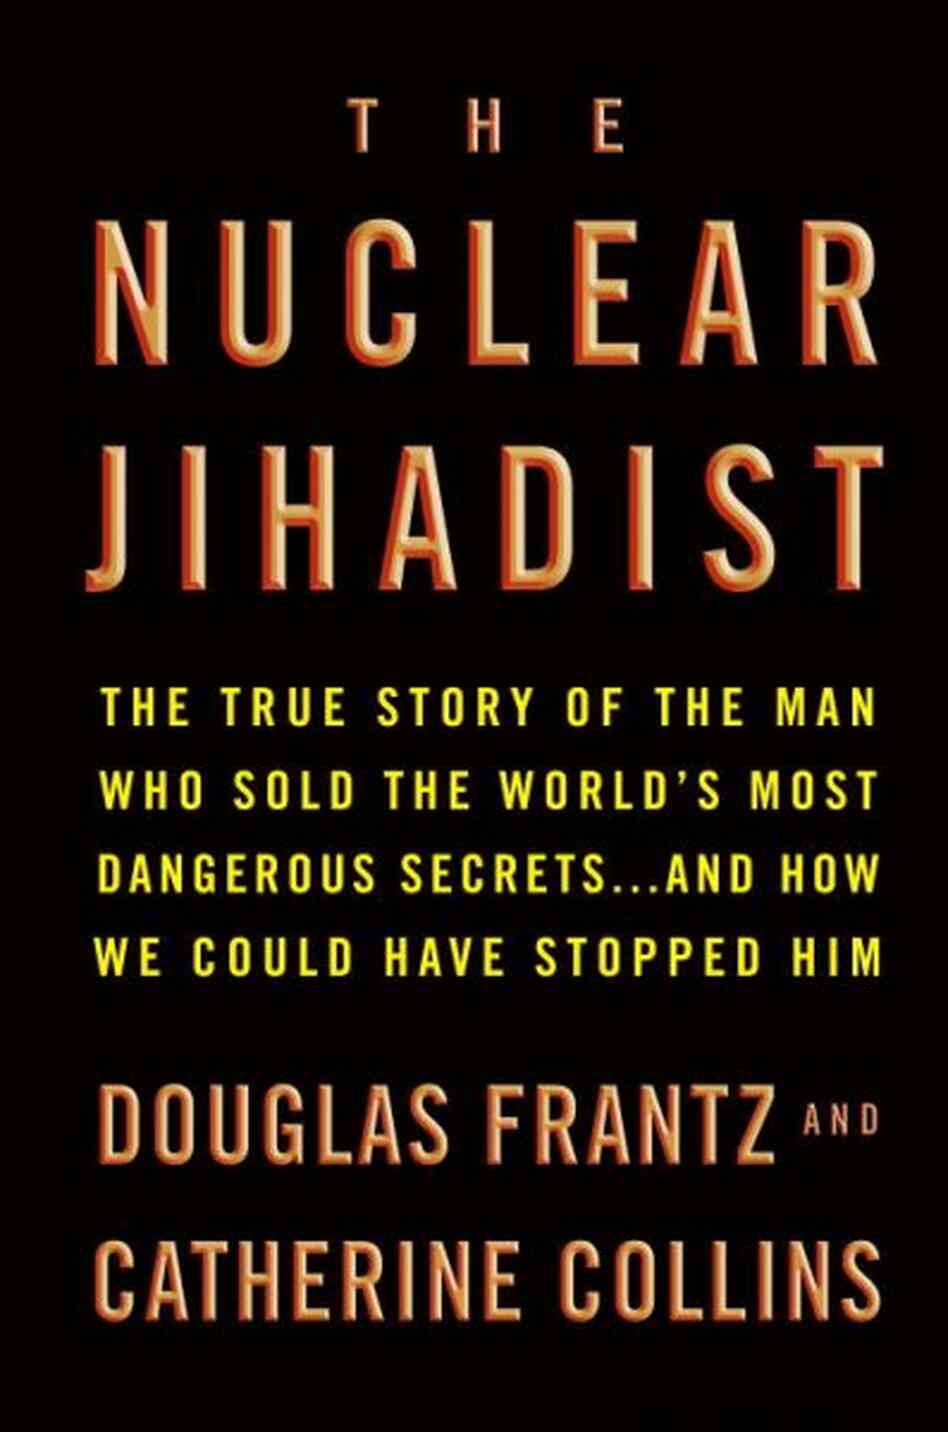 The Nuclear Jihadist